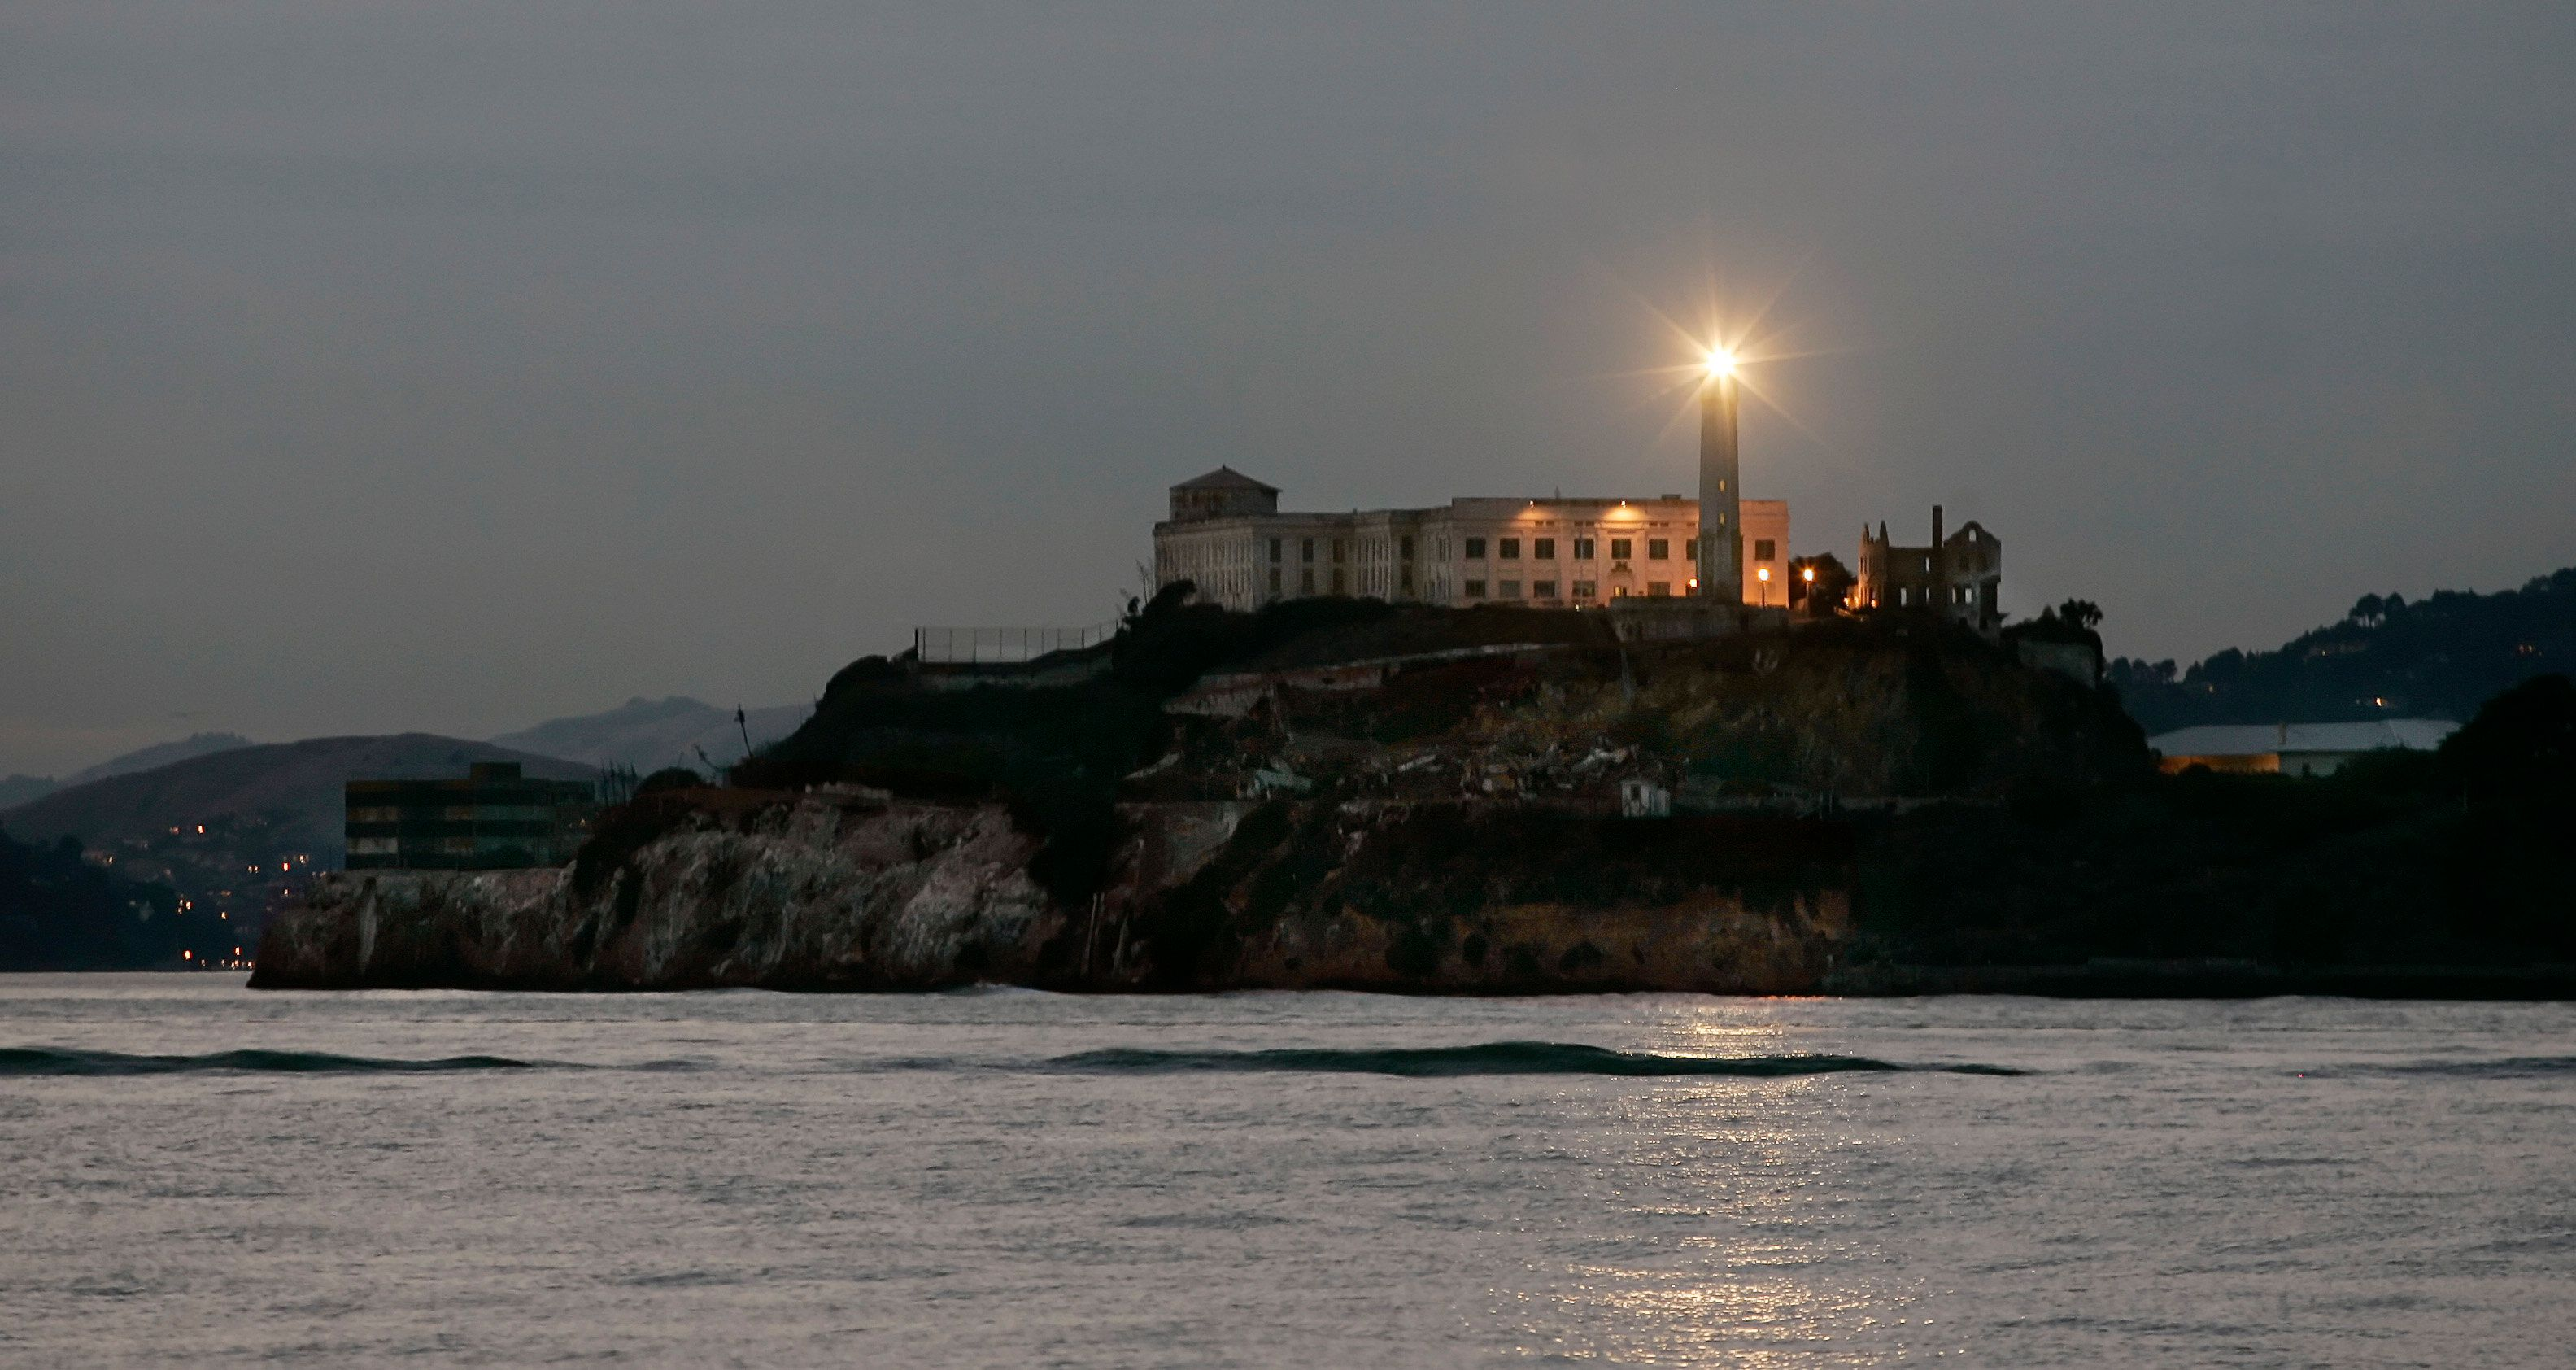 "The lighthouse on the former island prison of Alcatraz flashes at dusk in San Francisco Bay November 8, 2005. First used as a prison by the U.S. Army during the American Civil War, ""The Rock"" became a maximum security penitentiary in 1934 and was closed down in 1964. Today the island is part of the National Parks Service and tours are offered to the notorious island. REUTERS/Andy Clark"